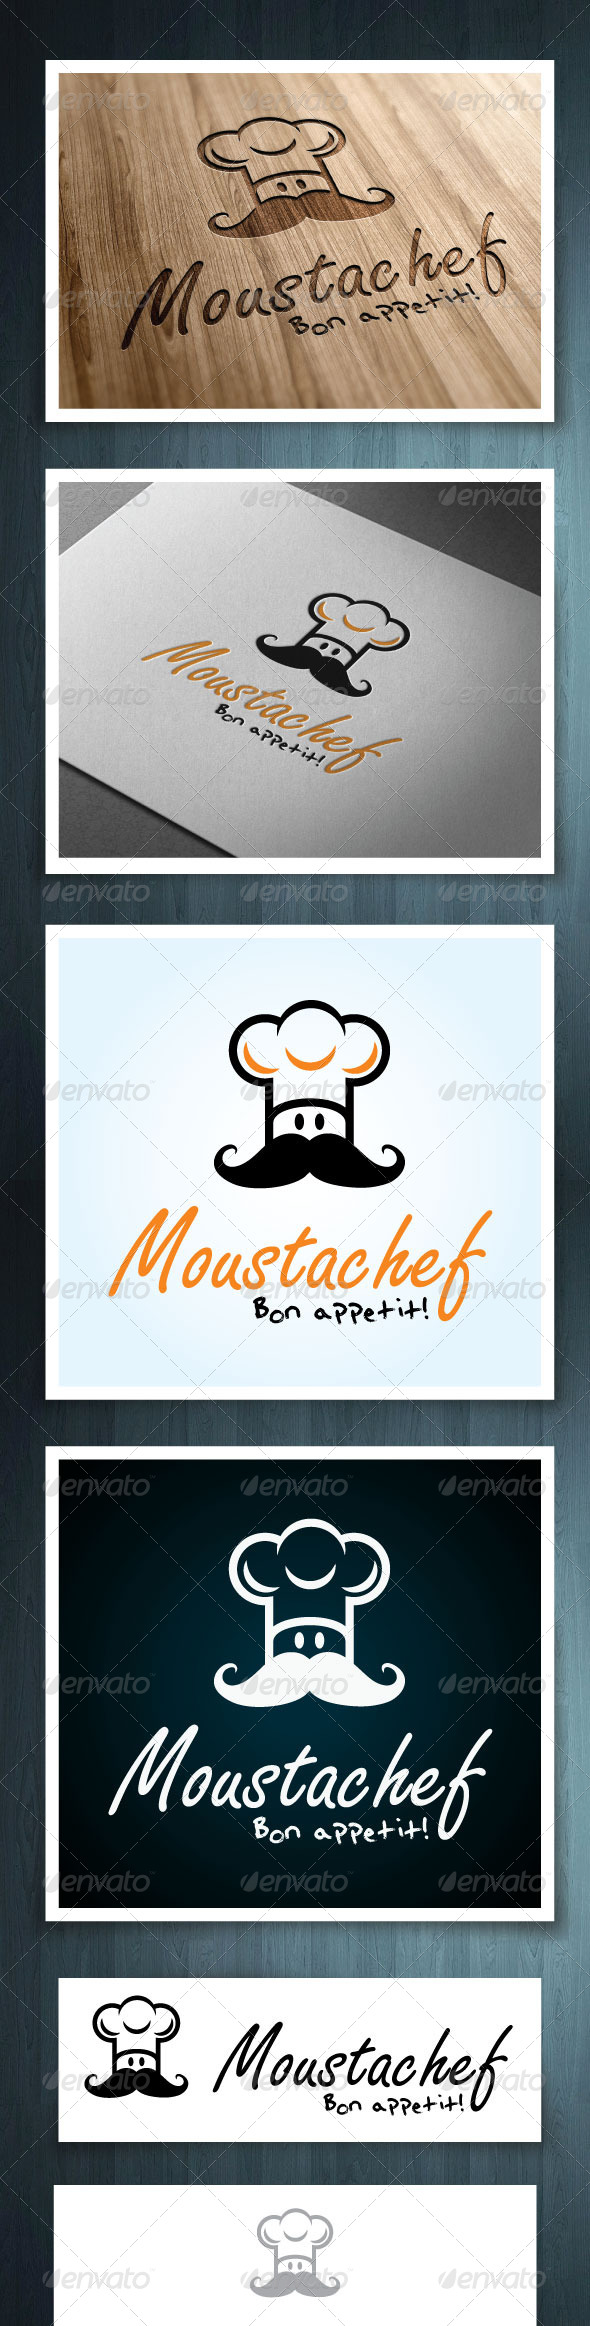 GraphicRiver Moustachef 5042791